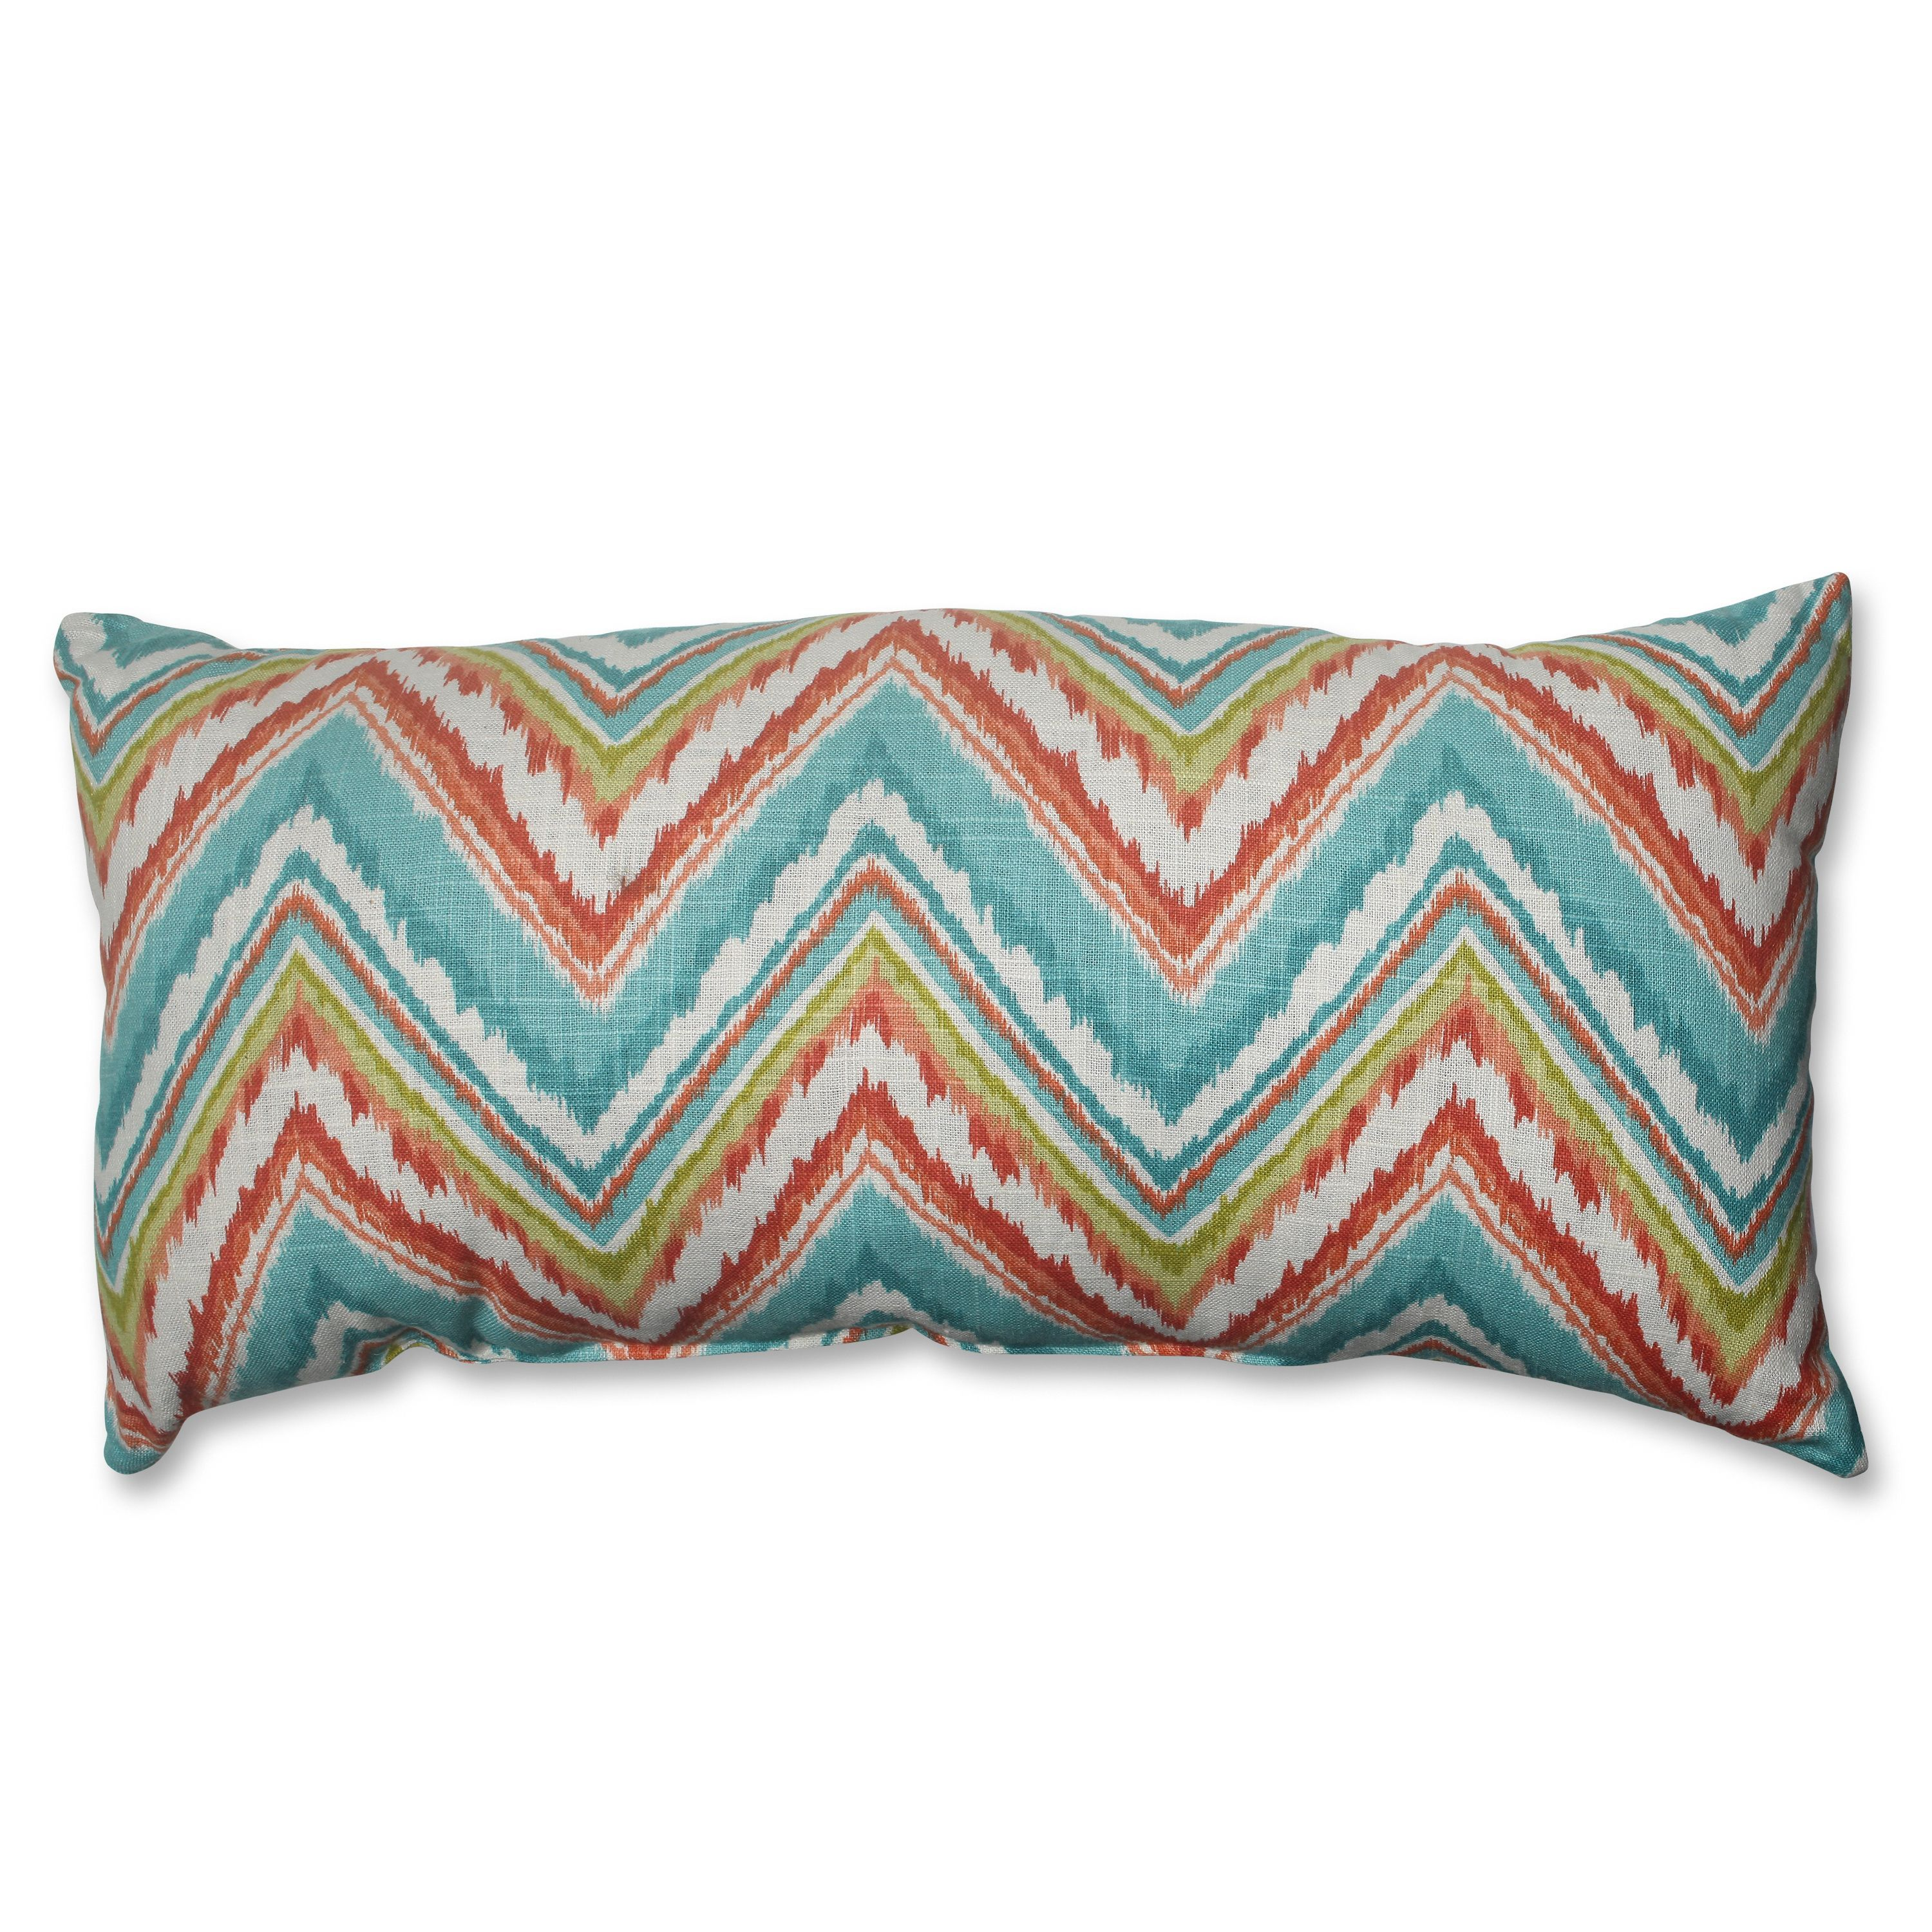 If you're looking to inject your room with fun, you can't go wrong with this colorful throw pillow. This extra-long bolster-style pillow features an all-over chevron design and is sized just right to put under your head while napping and watching TV.